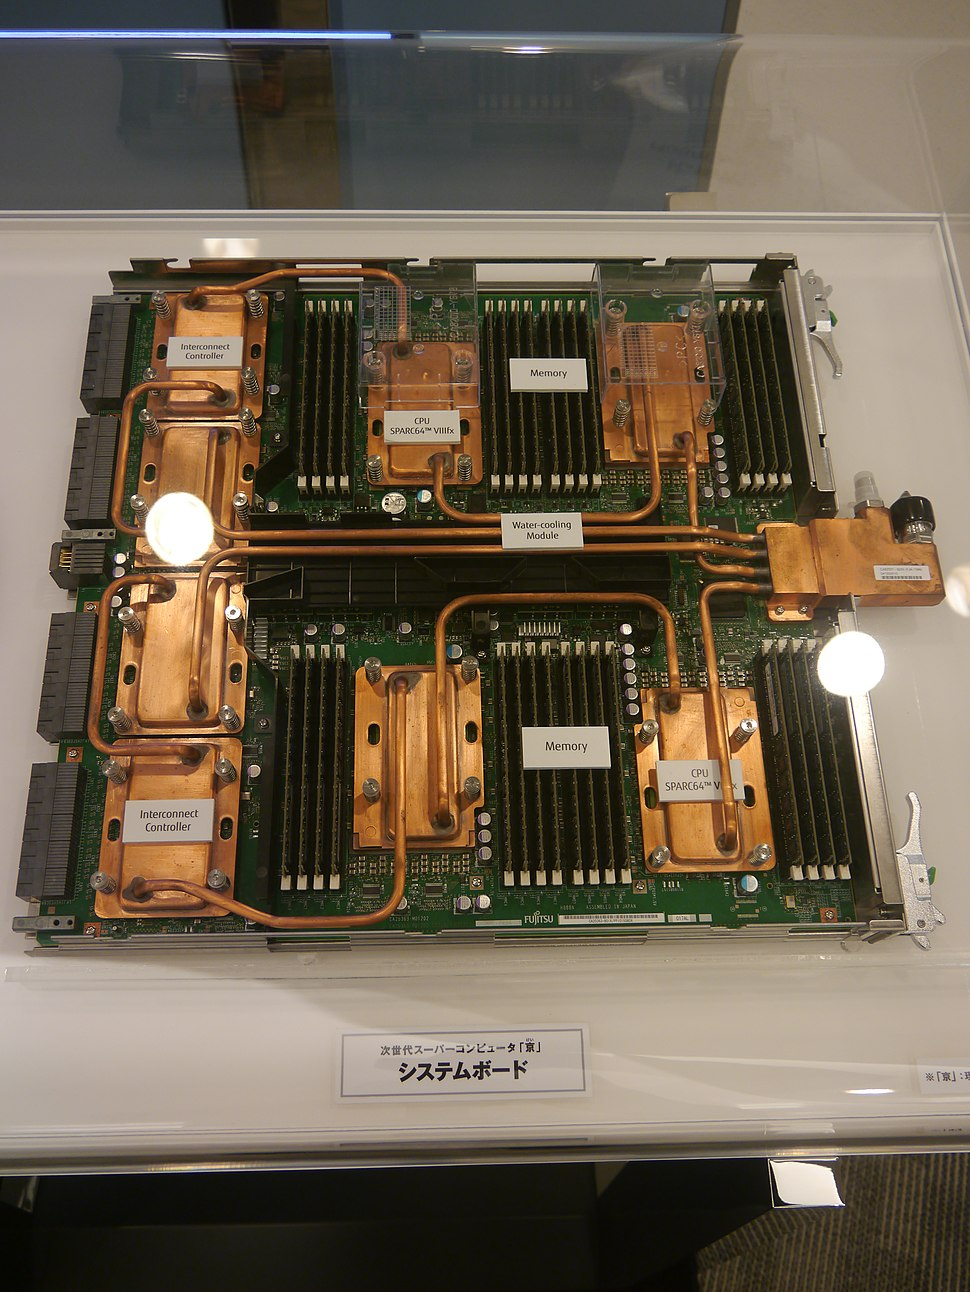 Board with SPARC64 VIIIfx processors on display in Fujitsu HQ